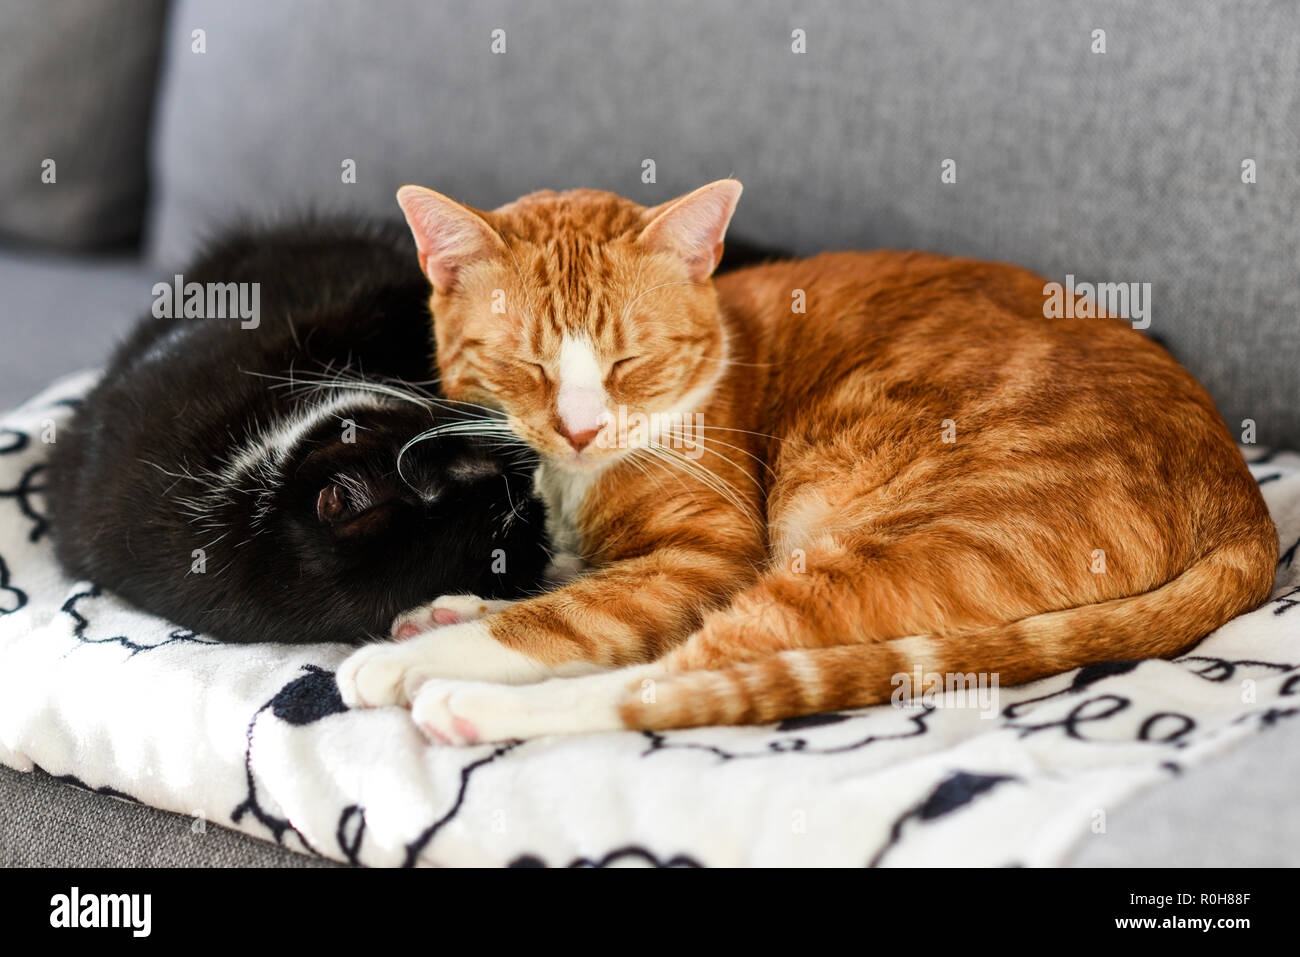 Two cats sleeping and cuddling on the sofa at home. - Stock Image